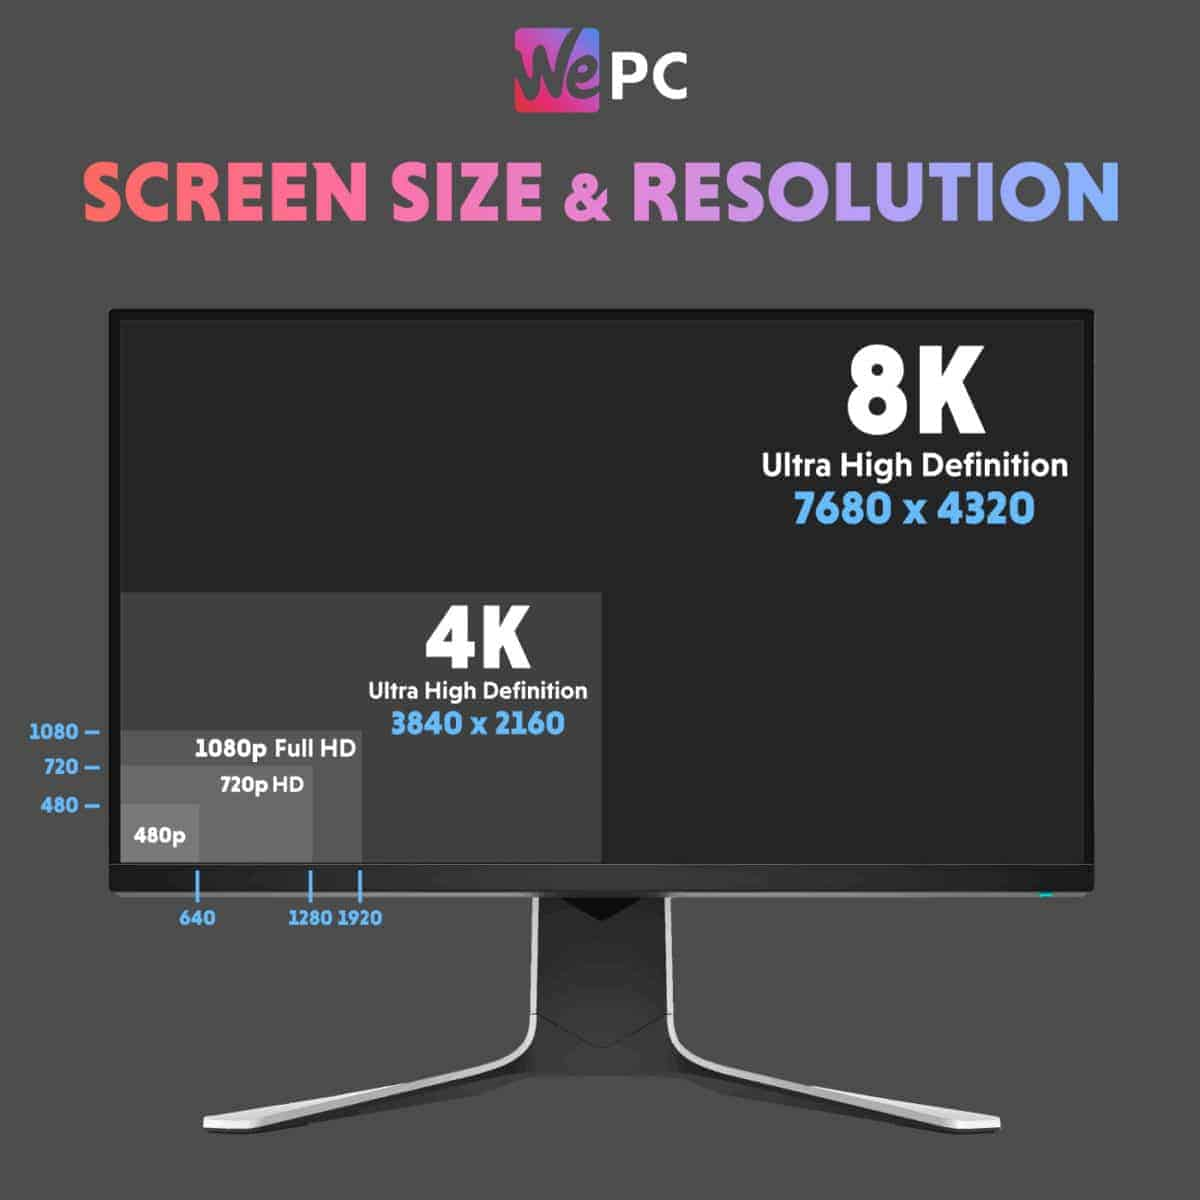 Monitor Screen Size and Resolution 1